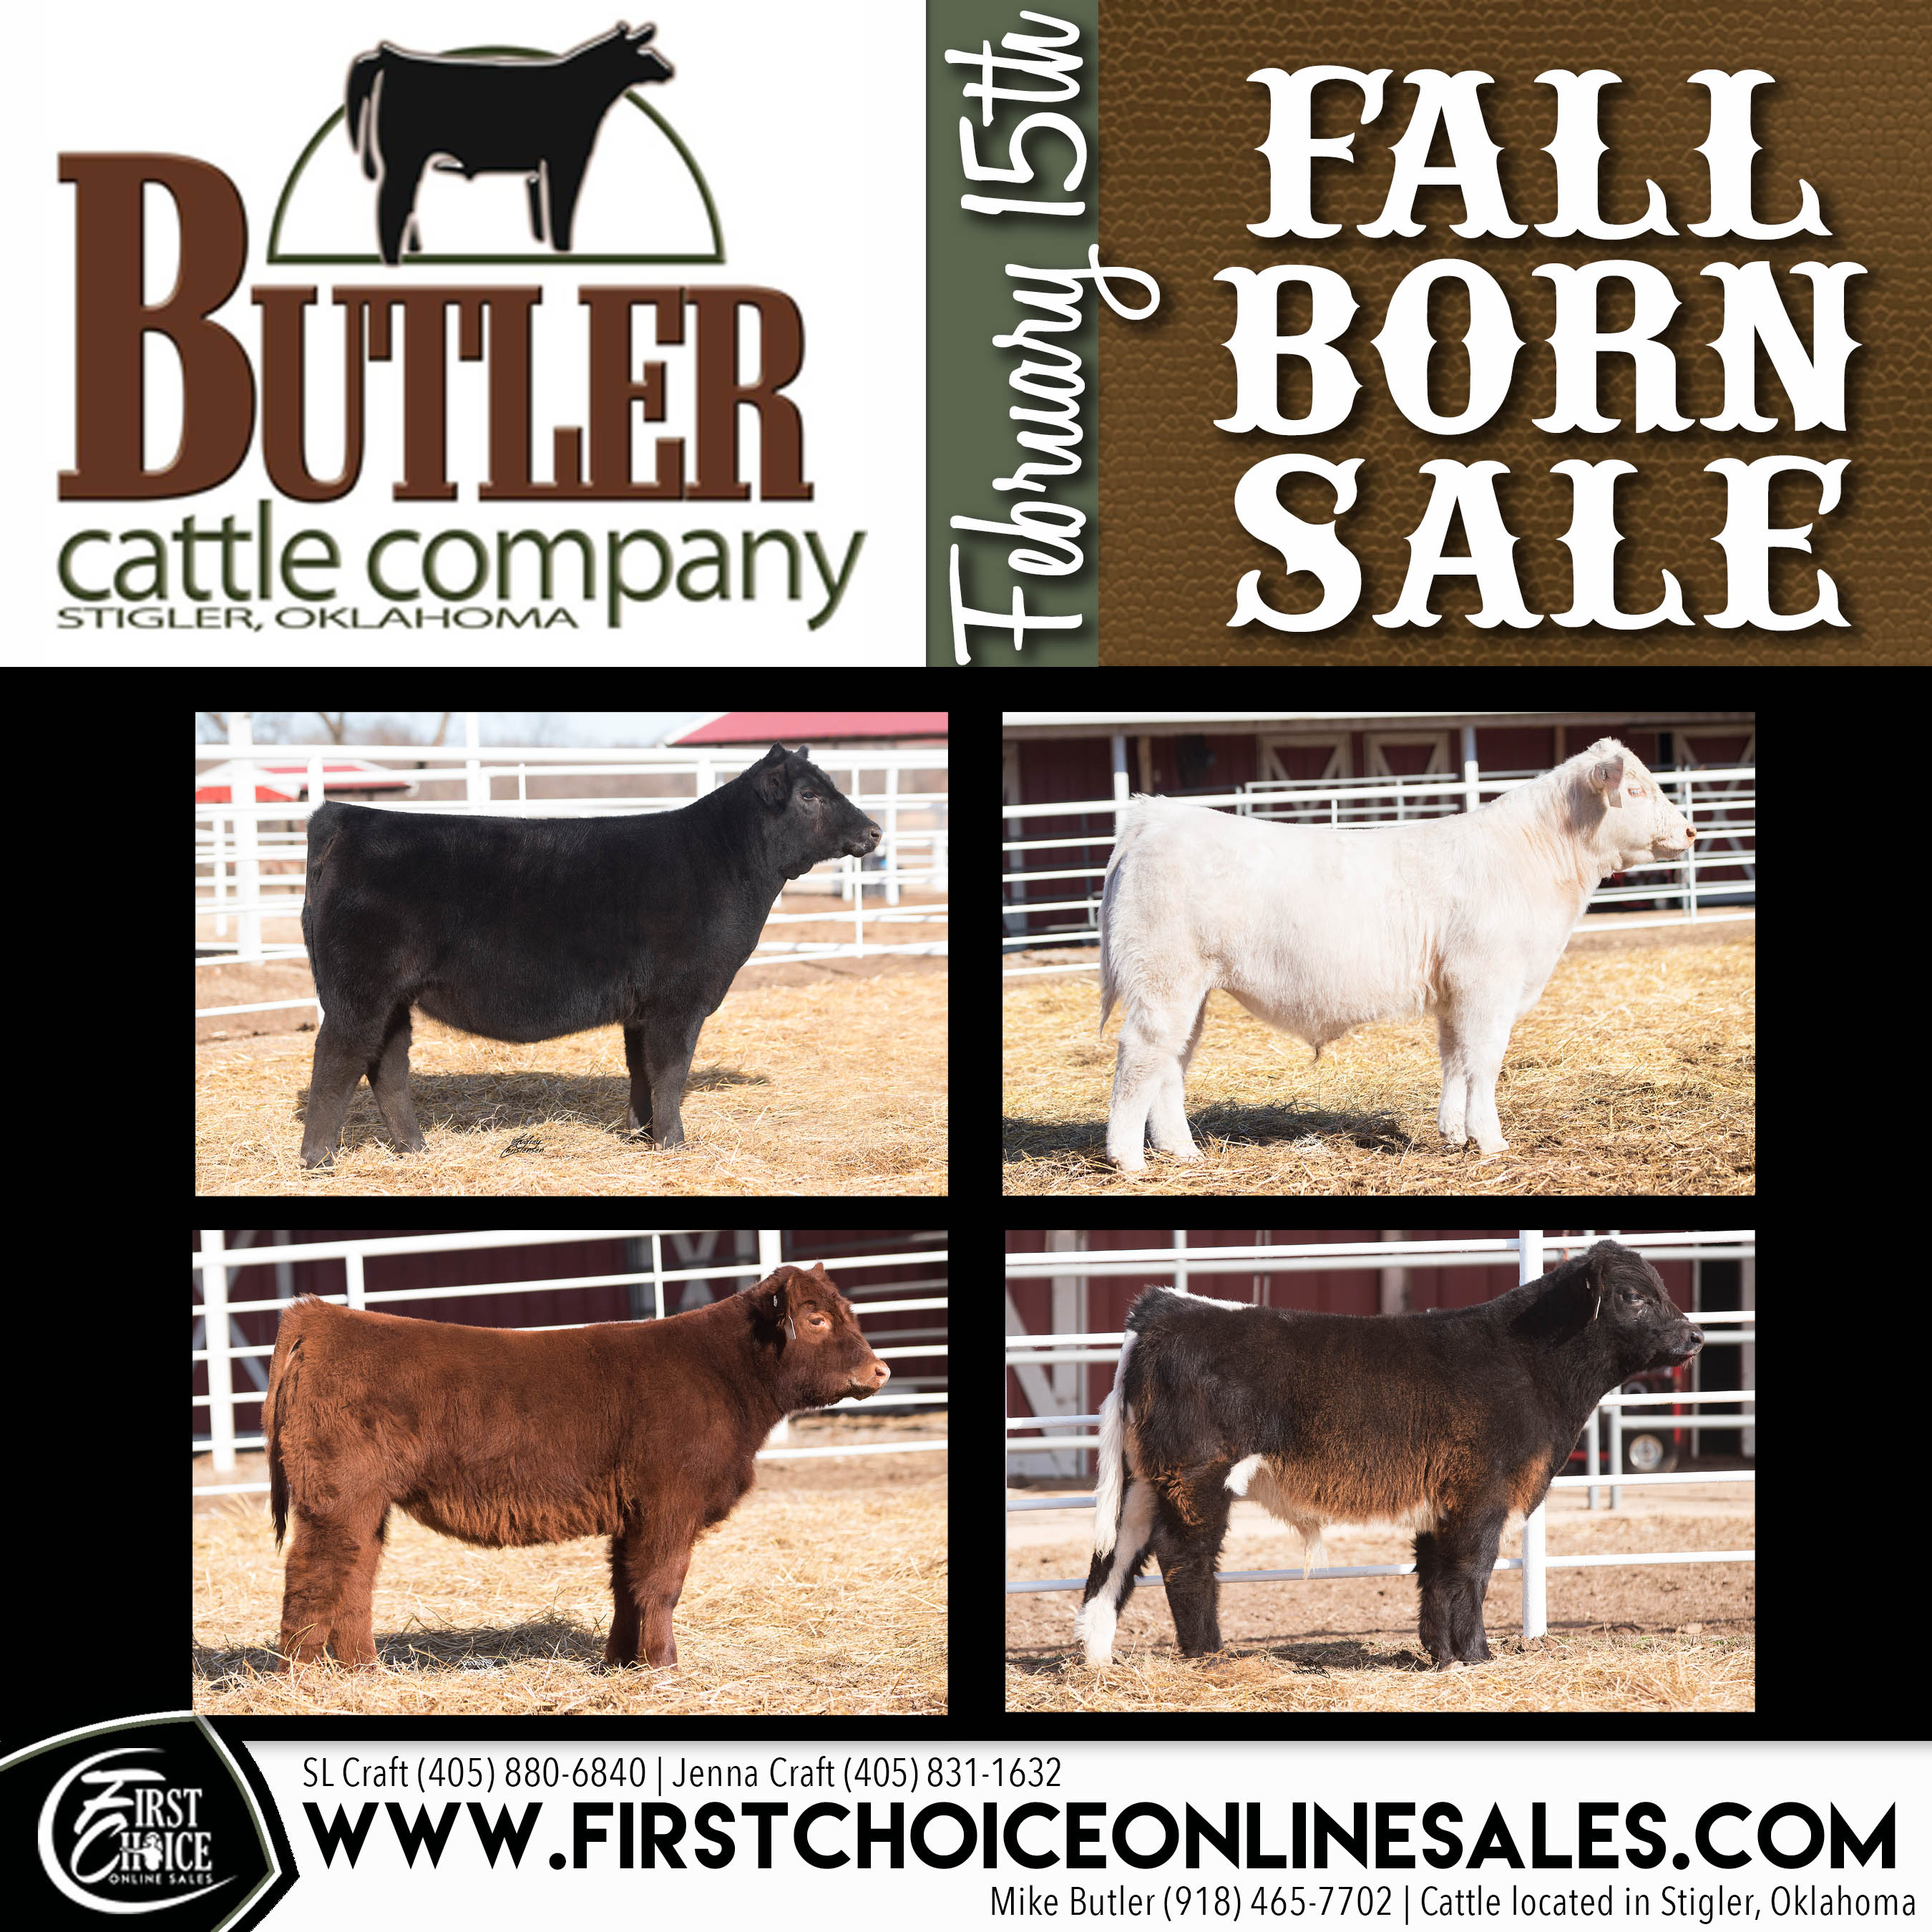 Company Butler butler cattle company – fall born sale – sullivan supply, inc.